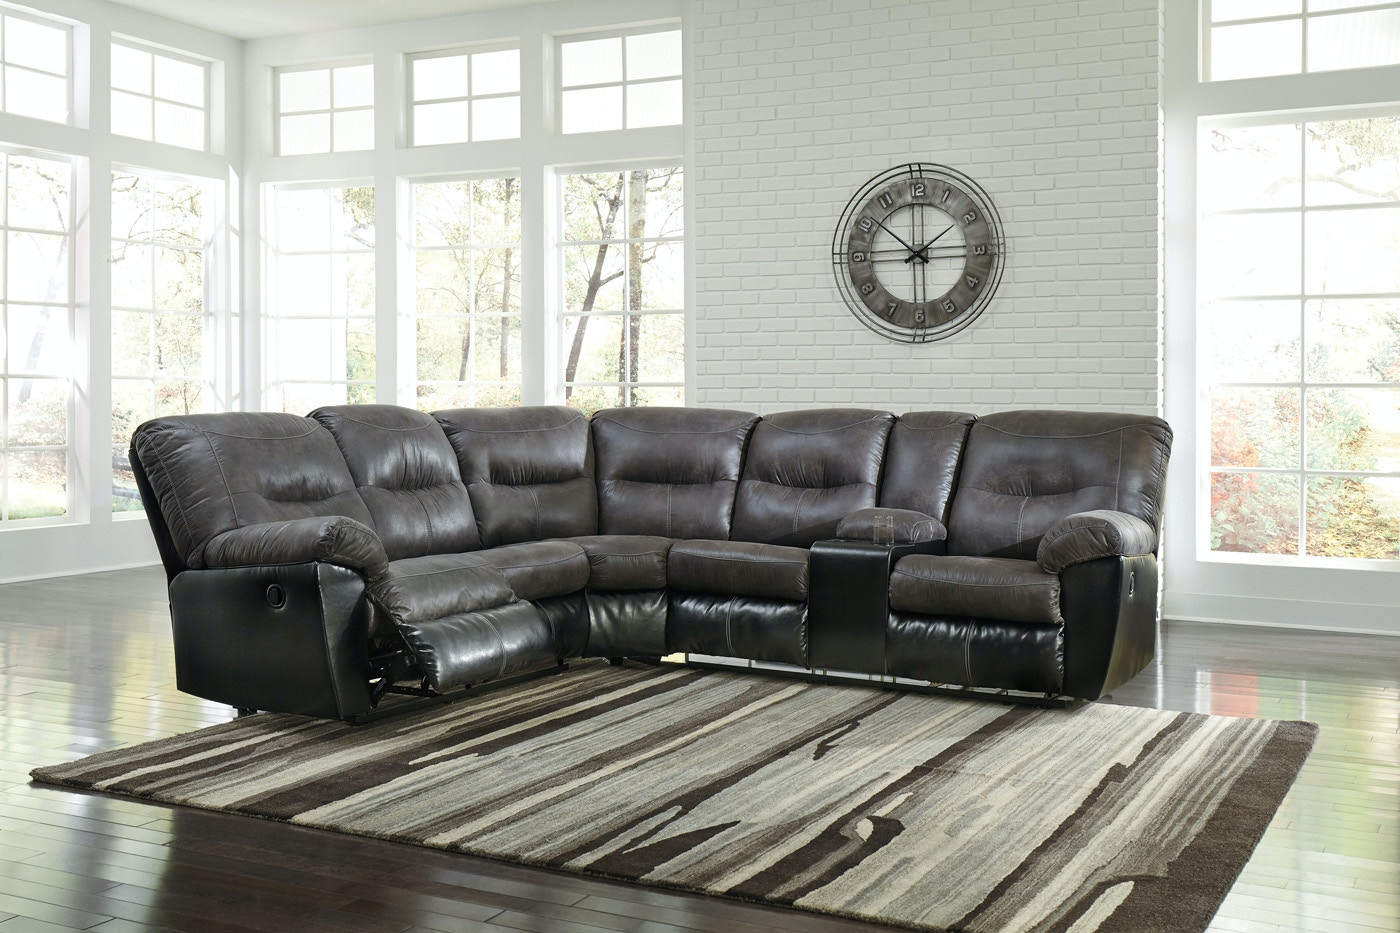 gallery signature large mood fallsworth c smoke sectional by media laf design ashley